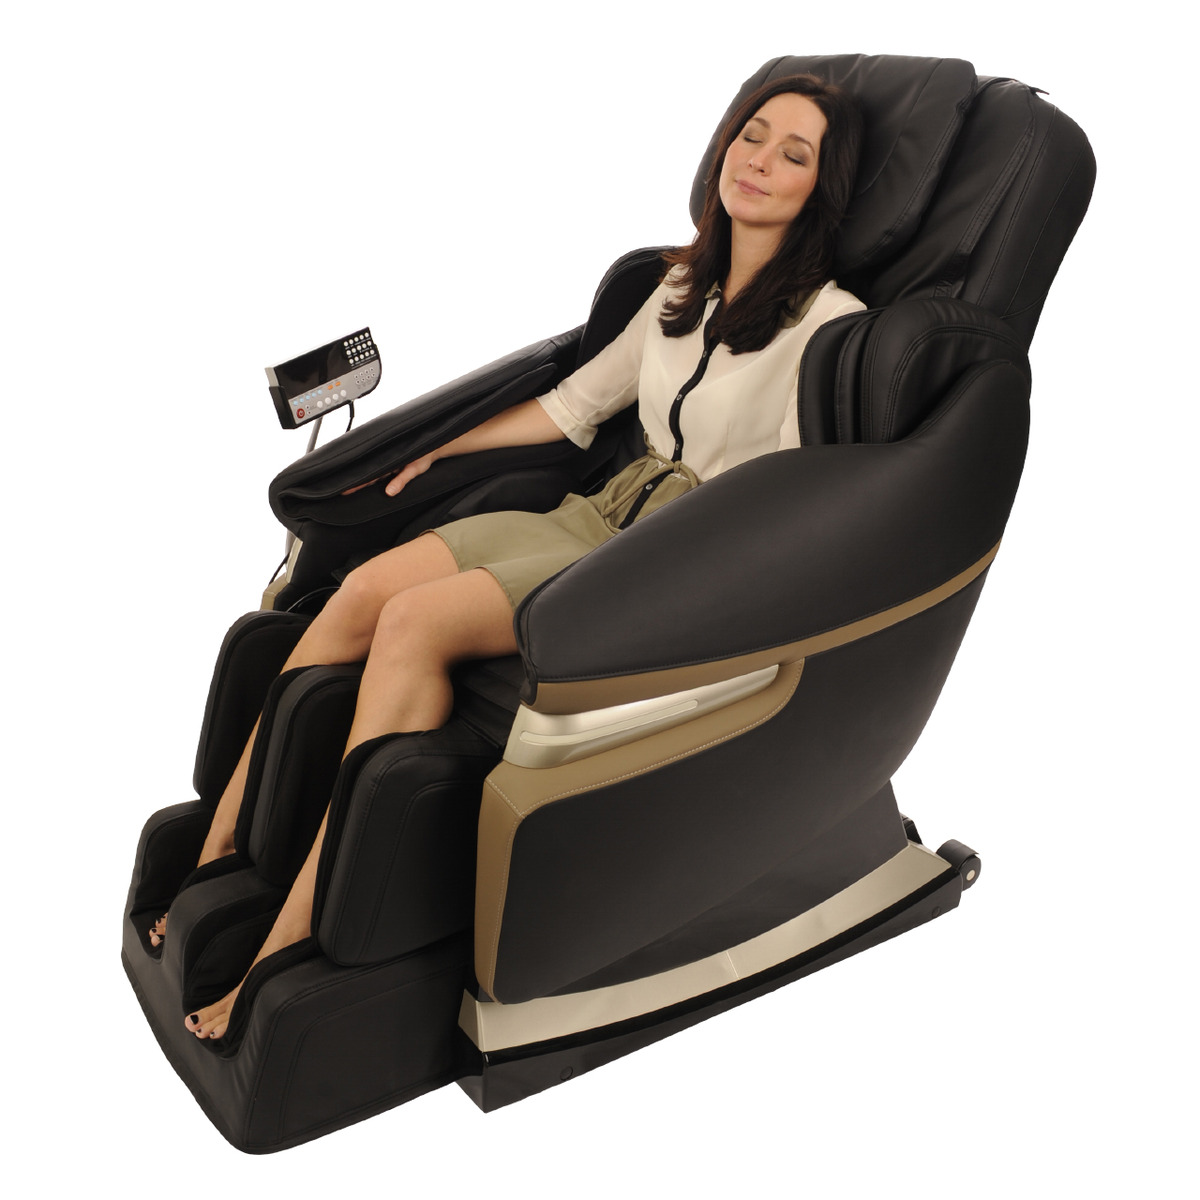 Affordable Massage Chairs Tennessee